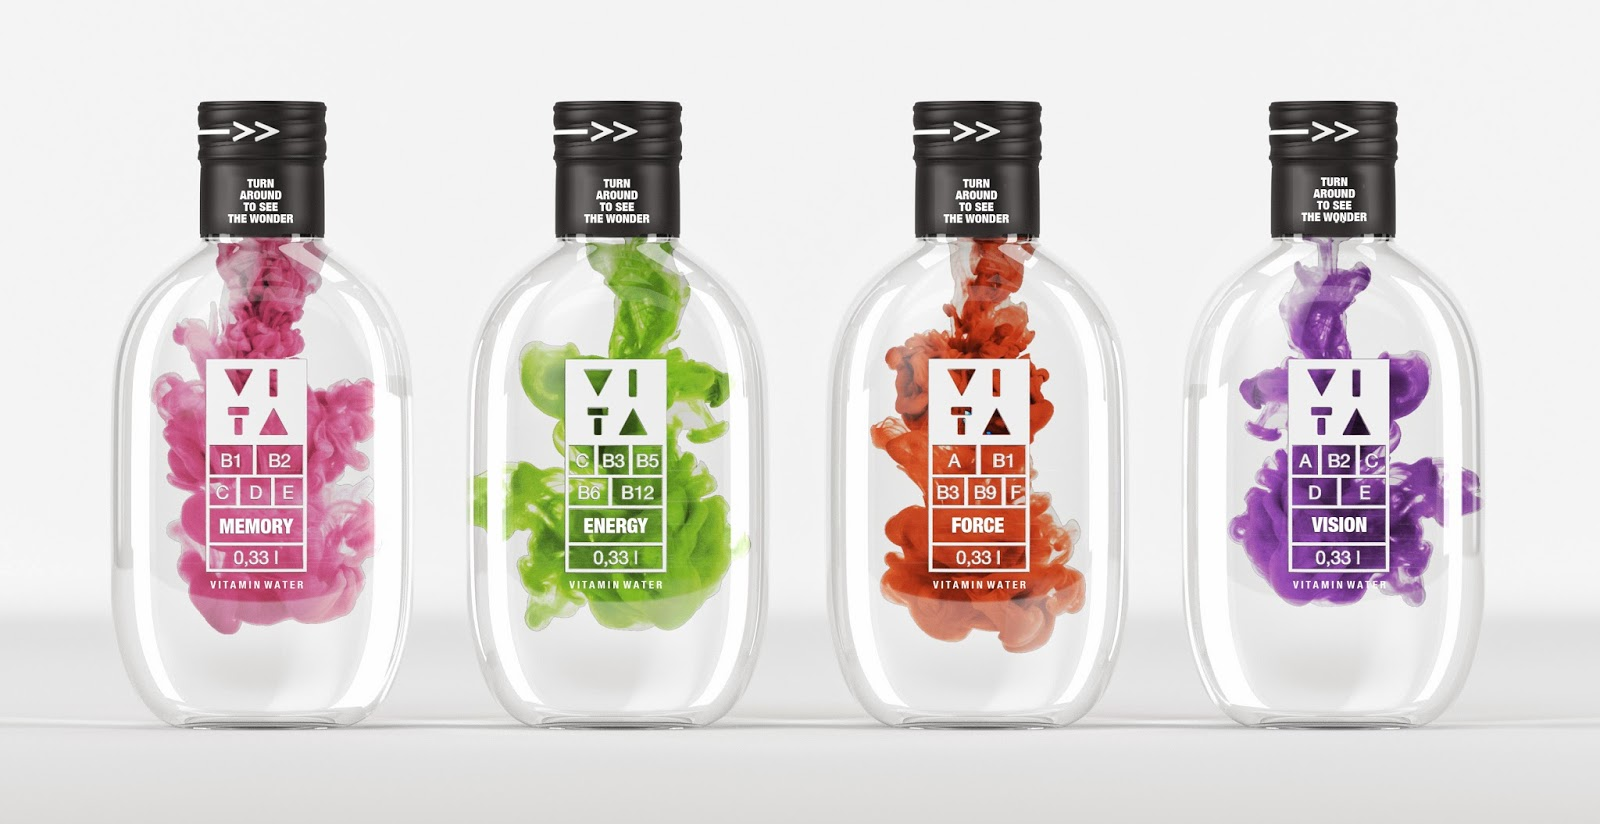 VITA Vitamin Water Student Project On Packaging Of The